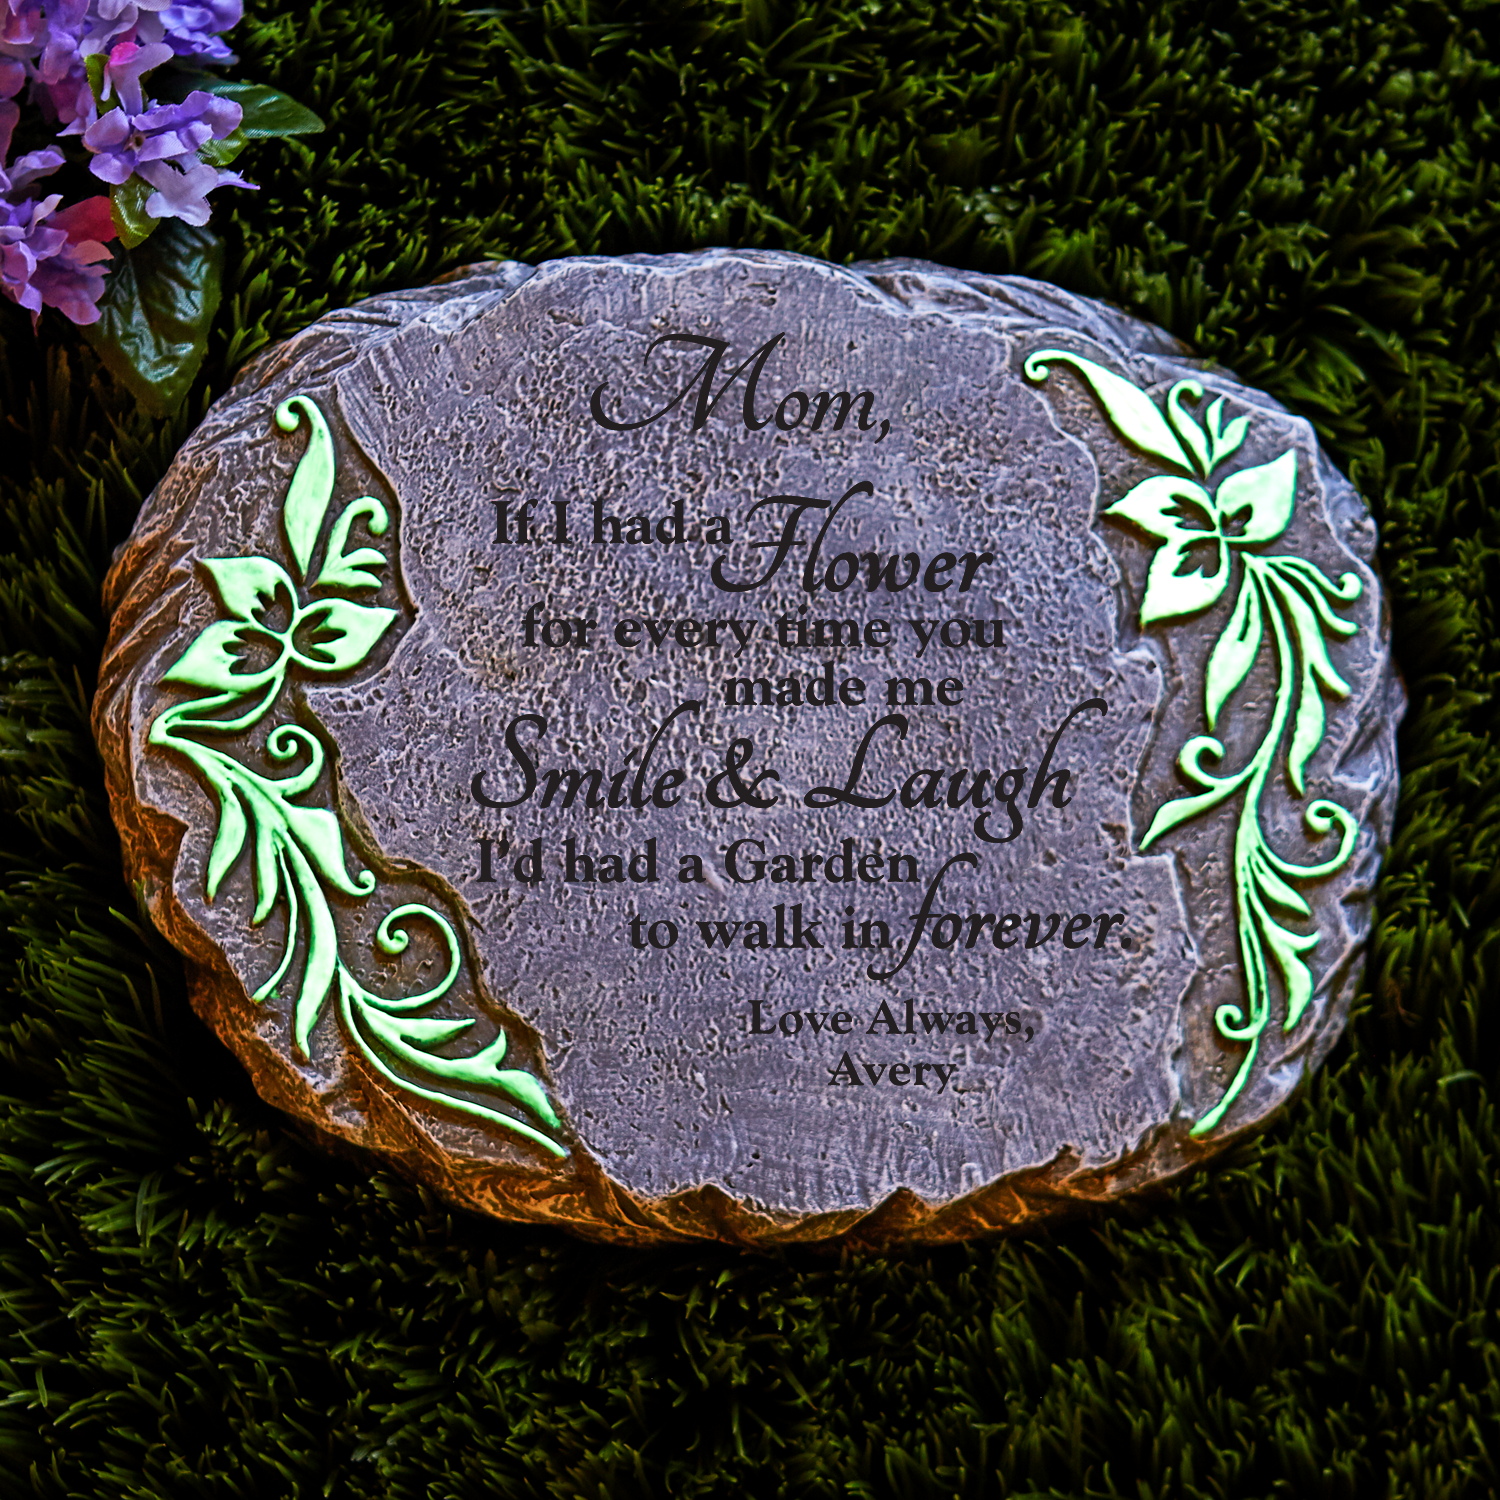 Personalized Forever Garden Glow Stepping Stone - I